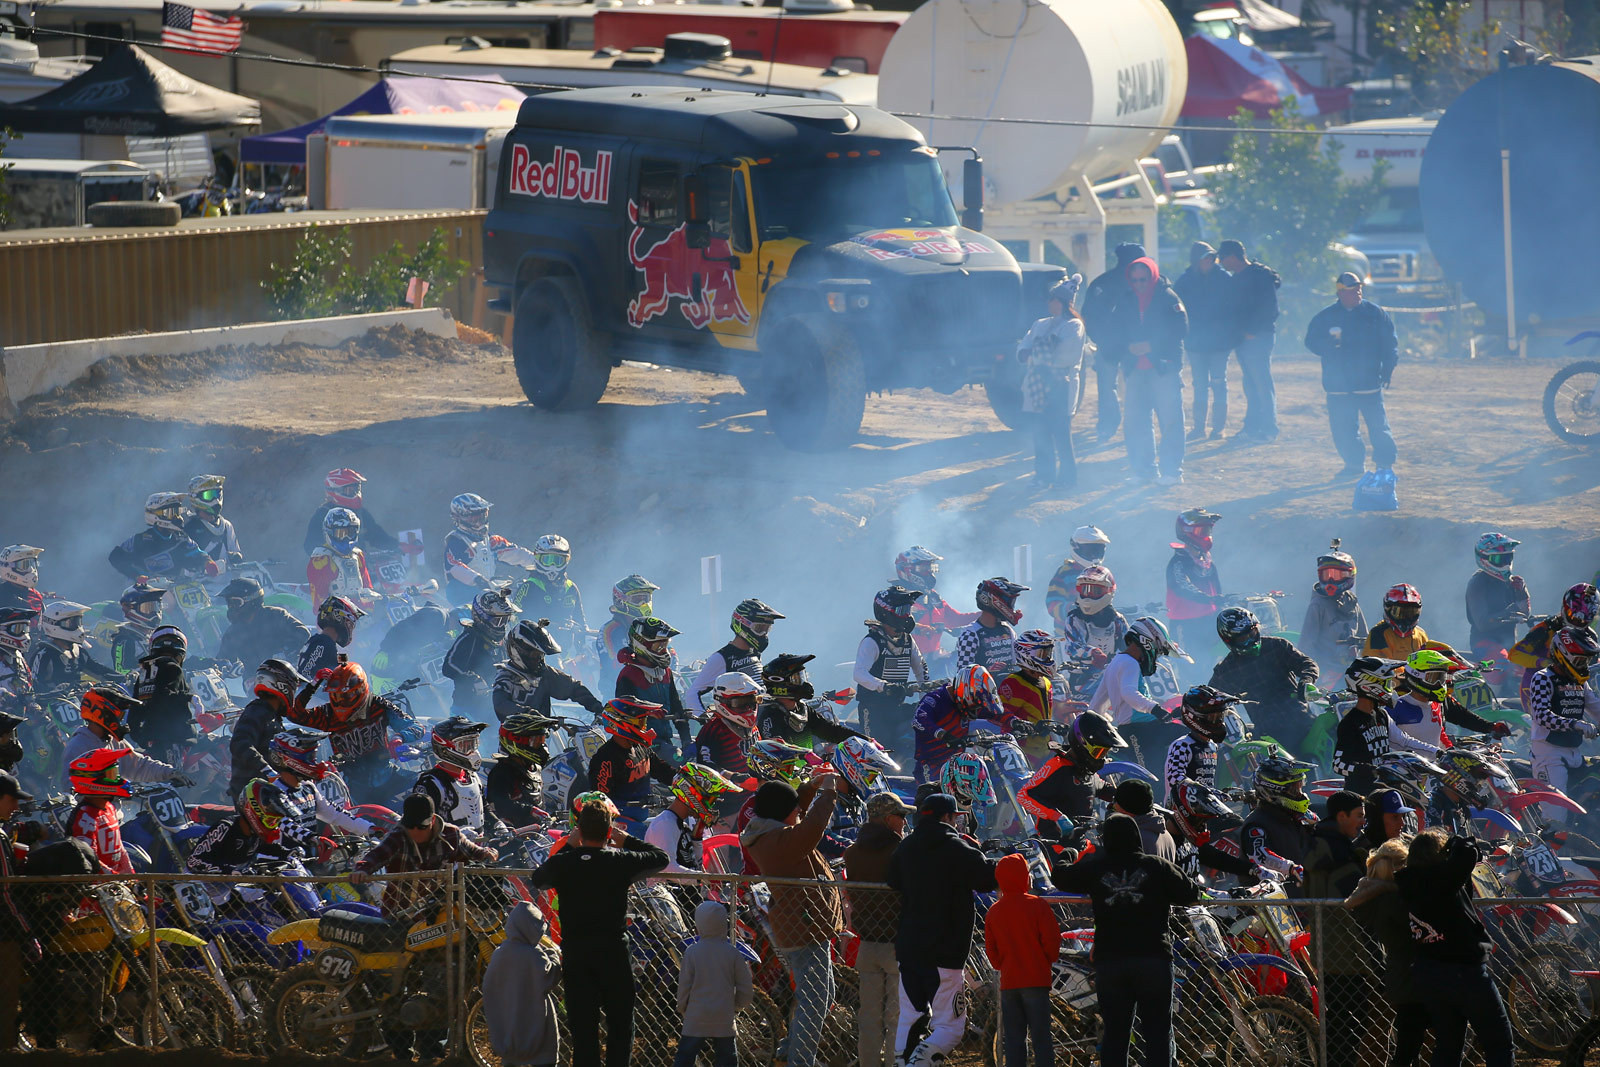 FMF 2-Stroke Revival Race - Friday and Saturday at Red Bull Day In The Dirt 18 - Motocross Pictures - Vital MX